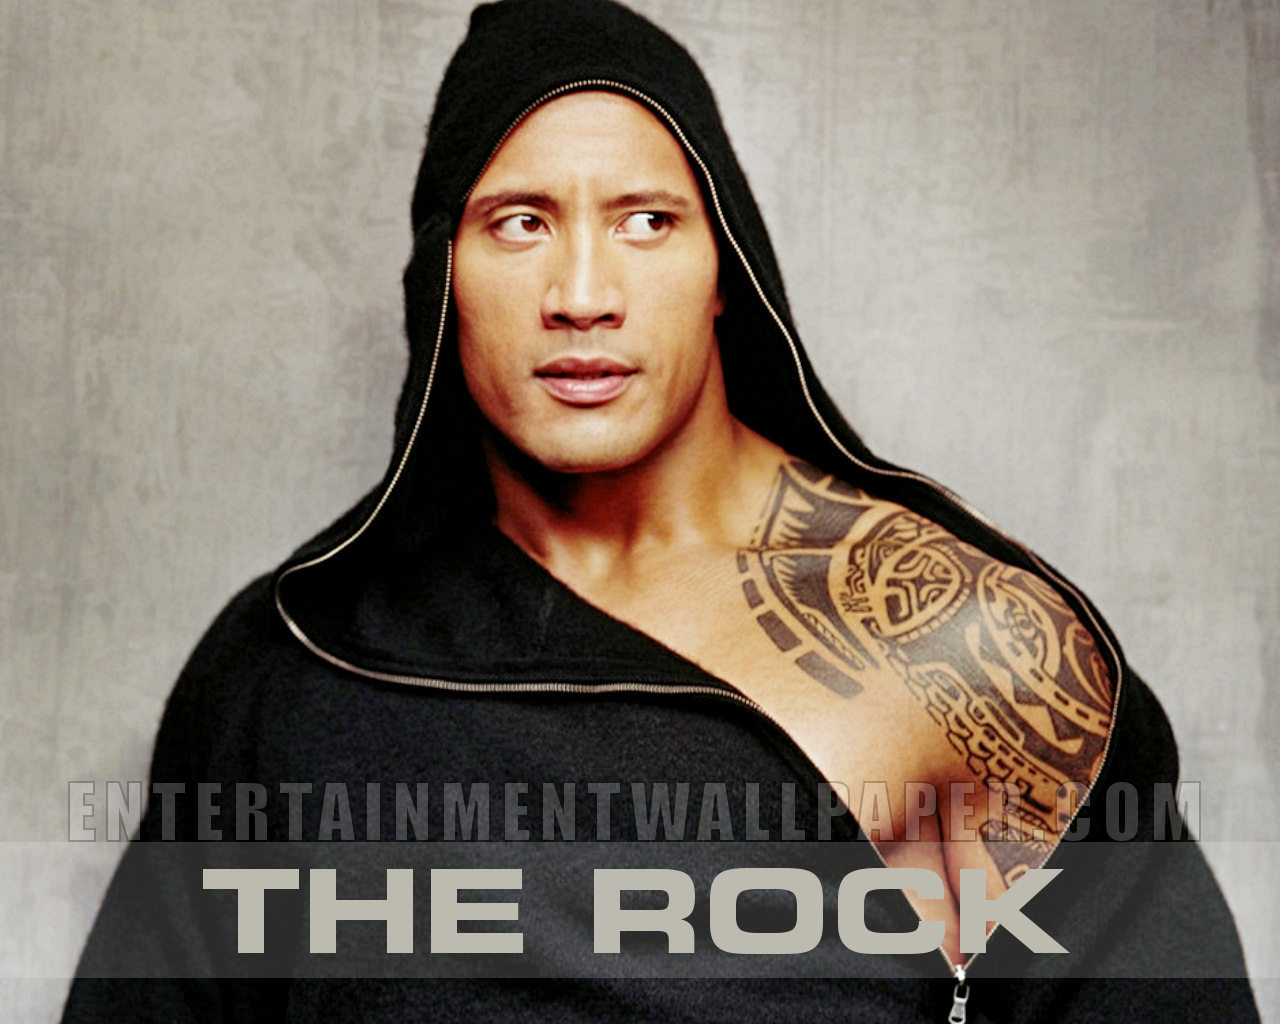 THE ROCK (DWAYNE JOHNSON) SELLS HIS ESTATE FOR $4.9MILLION USD